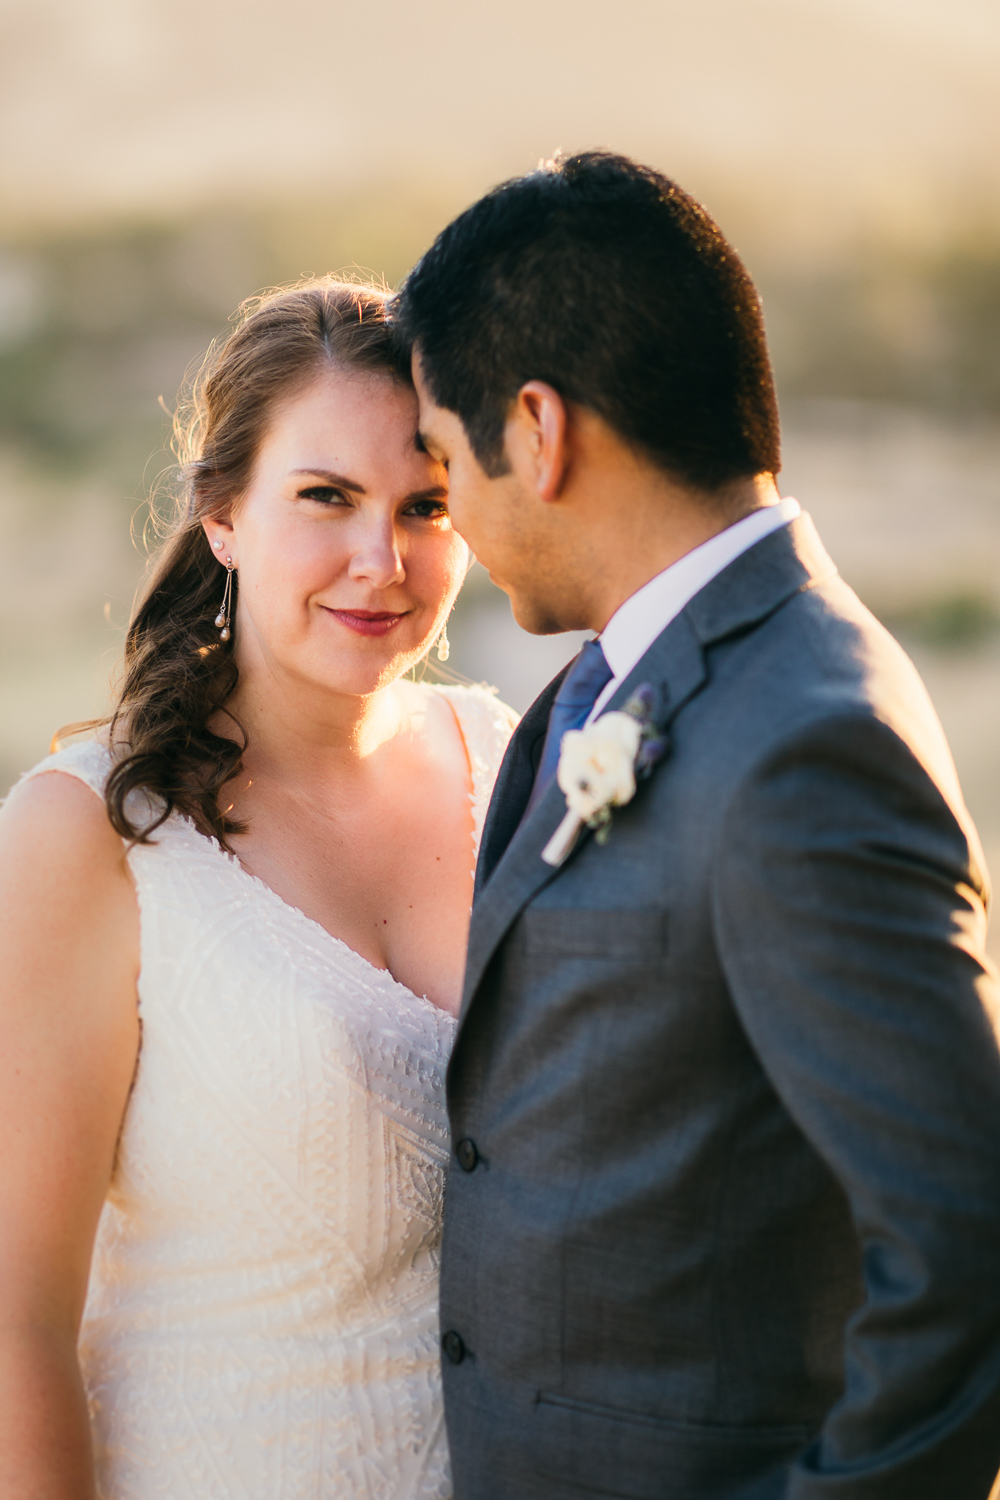 Best-Paso-Robles-California-Wedding-Photographer-325.jpg